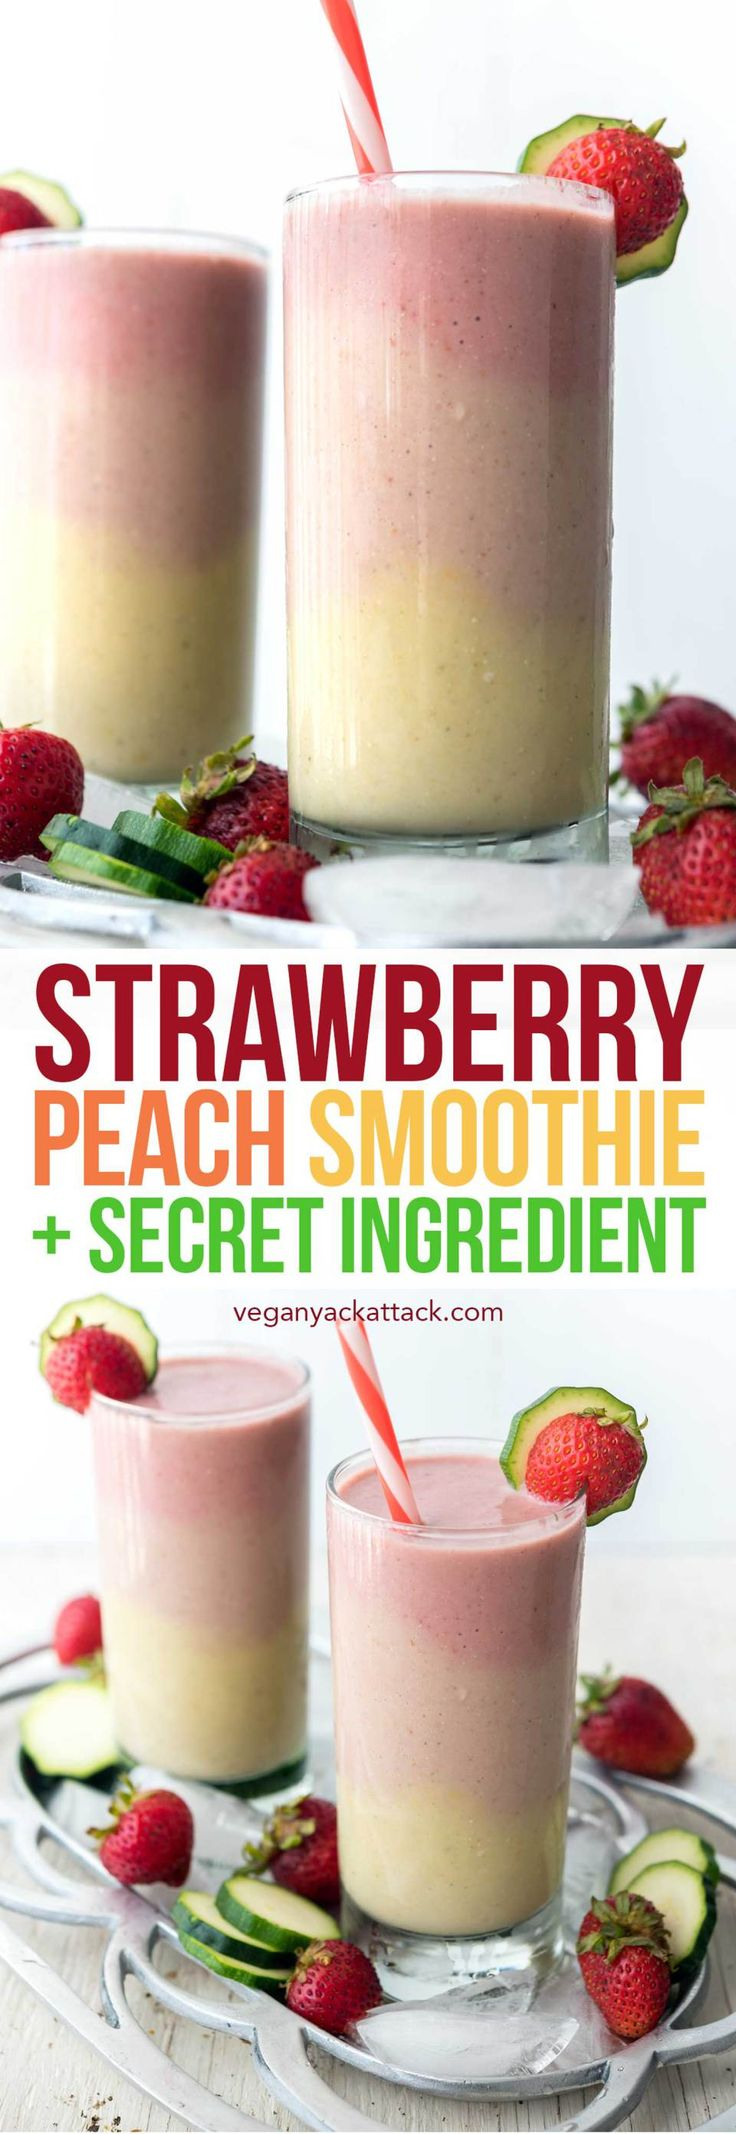 This Strawberry Peach Smoothie has beautiful, creamy layers, with some sneaky ingredients! Perfect for breakfast, or to cool down this summer. #vegan #glutenfree #soyfree #veganyackattack #SilkSmoothies